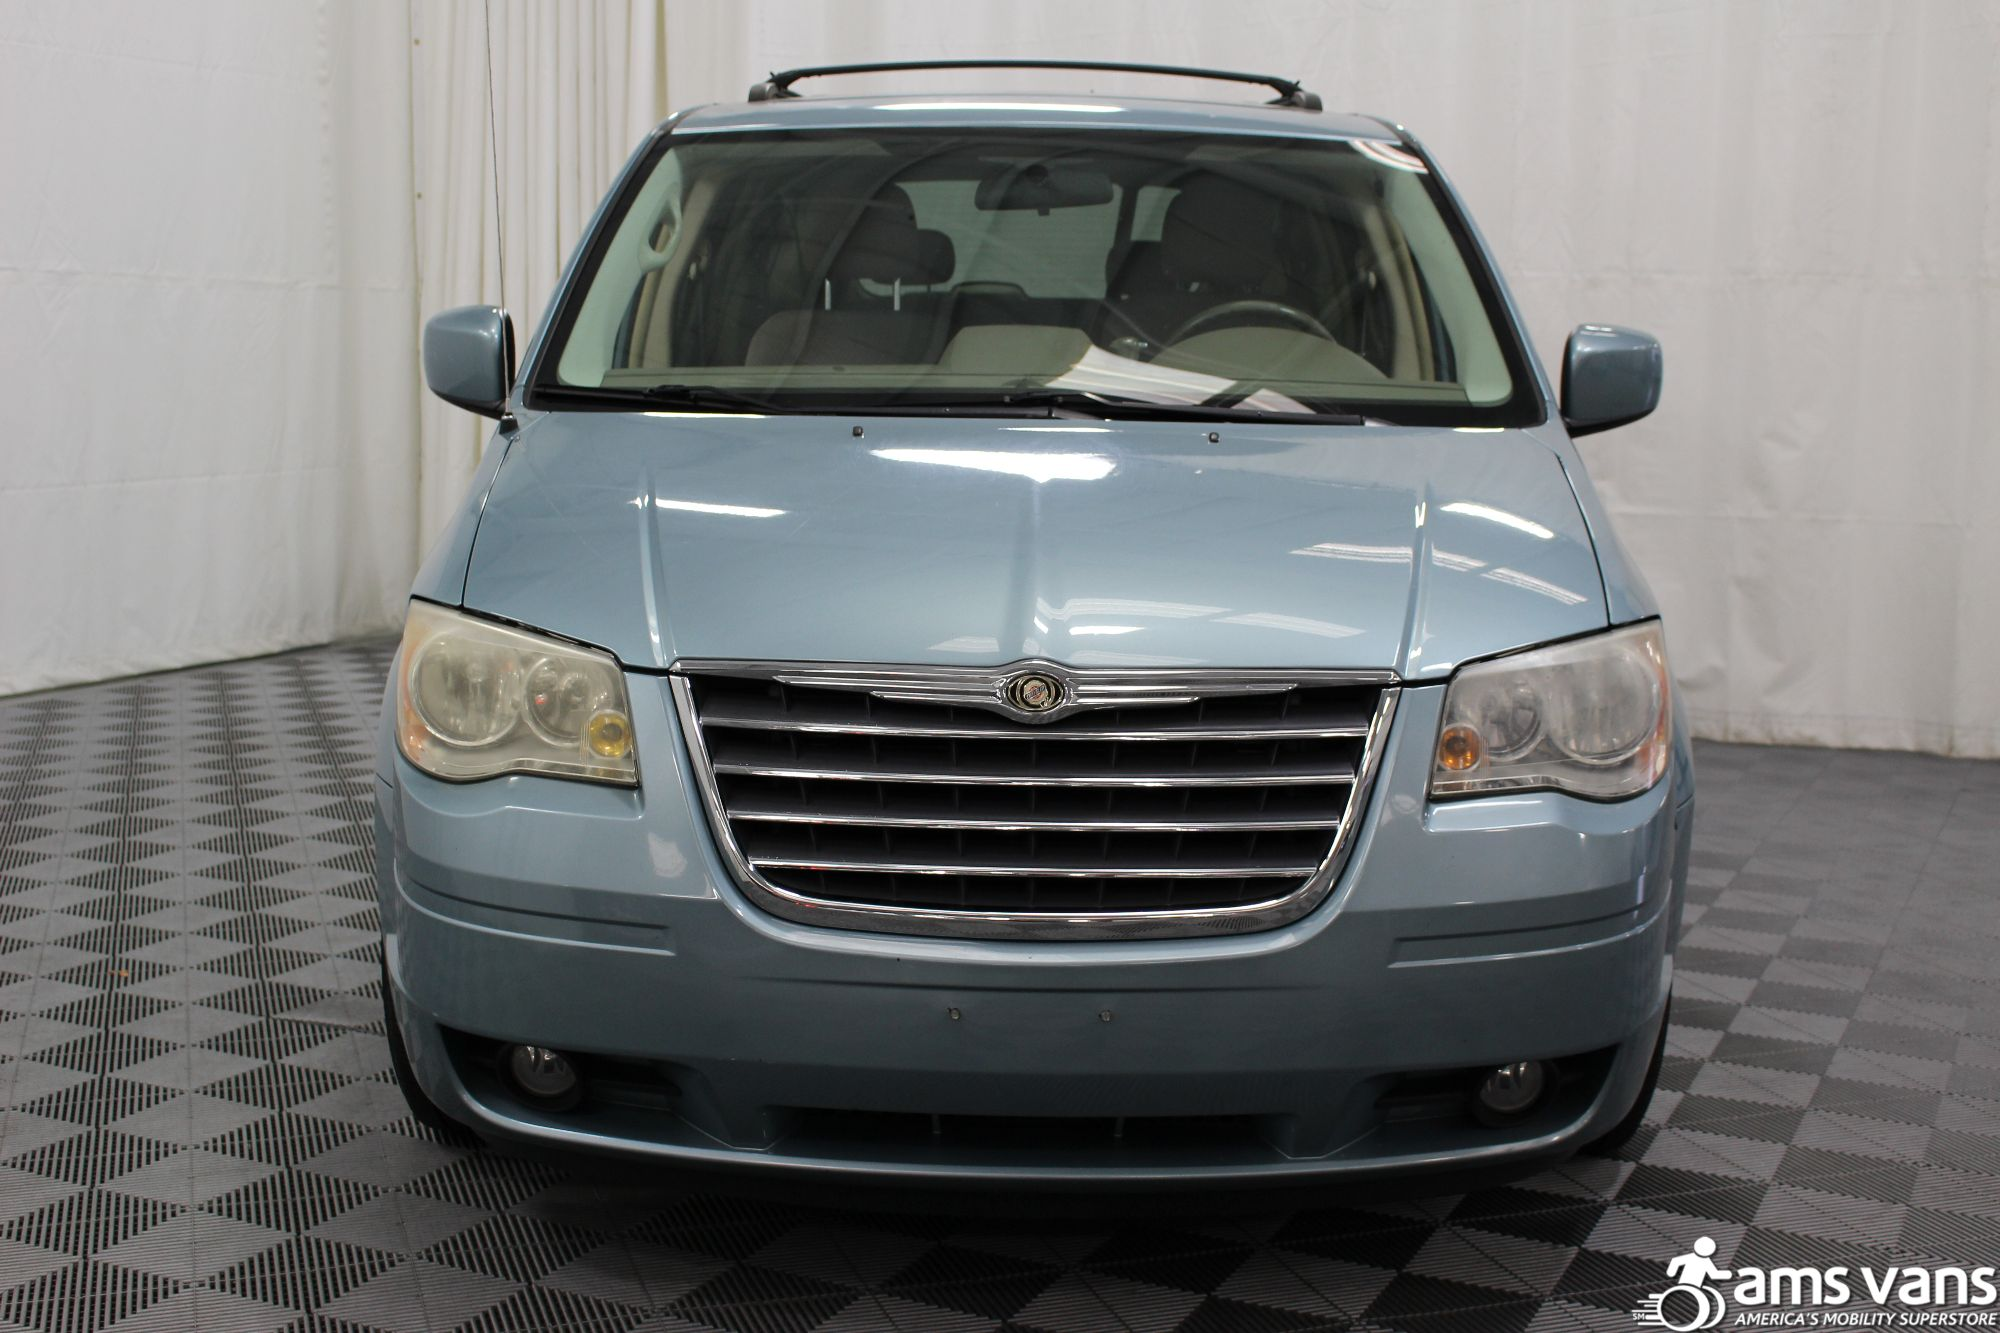 2010 Chrysler Town and Country Wheelchair Van For Sale #18